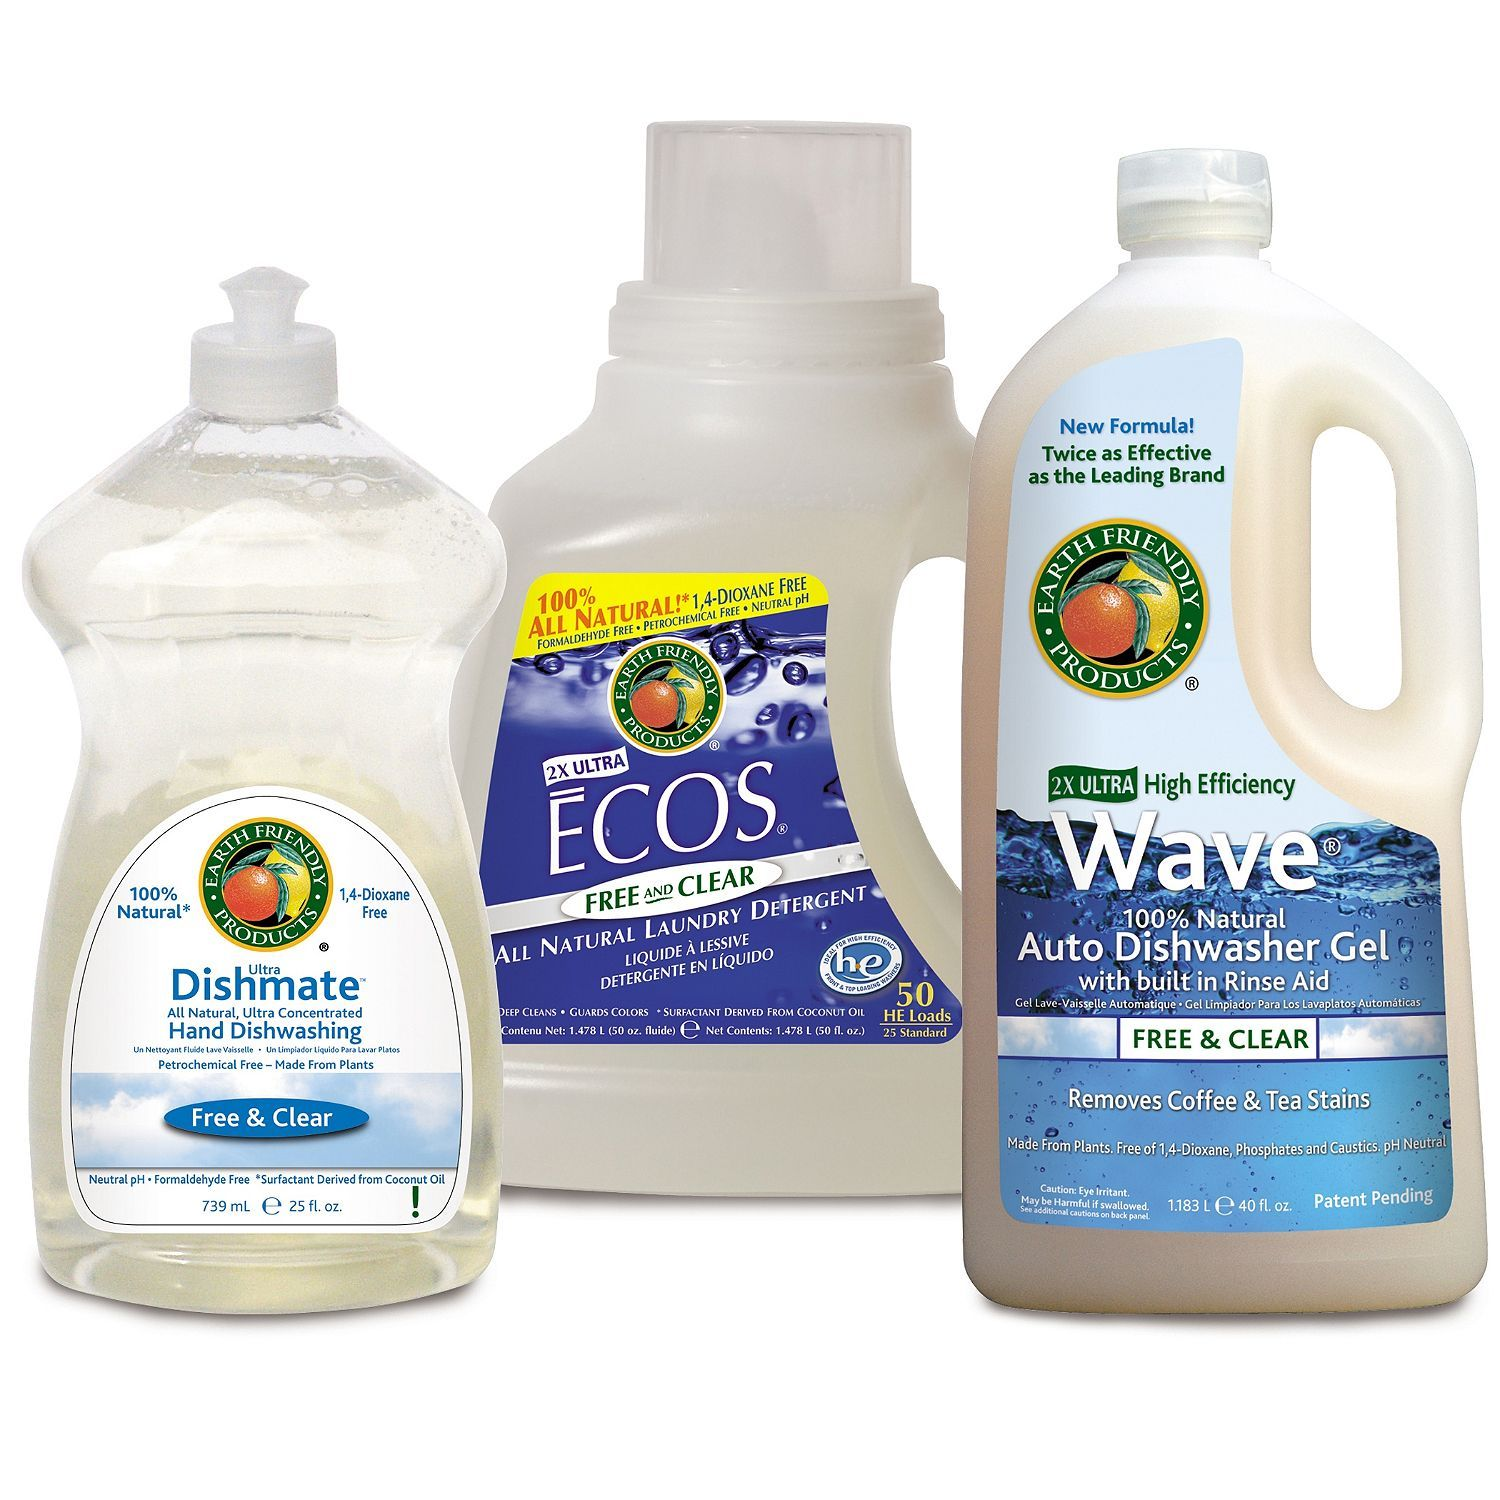 Earth friendly products free and clear cleaning kit sam